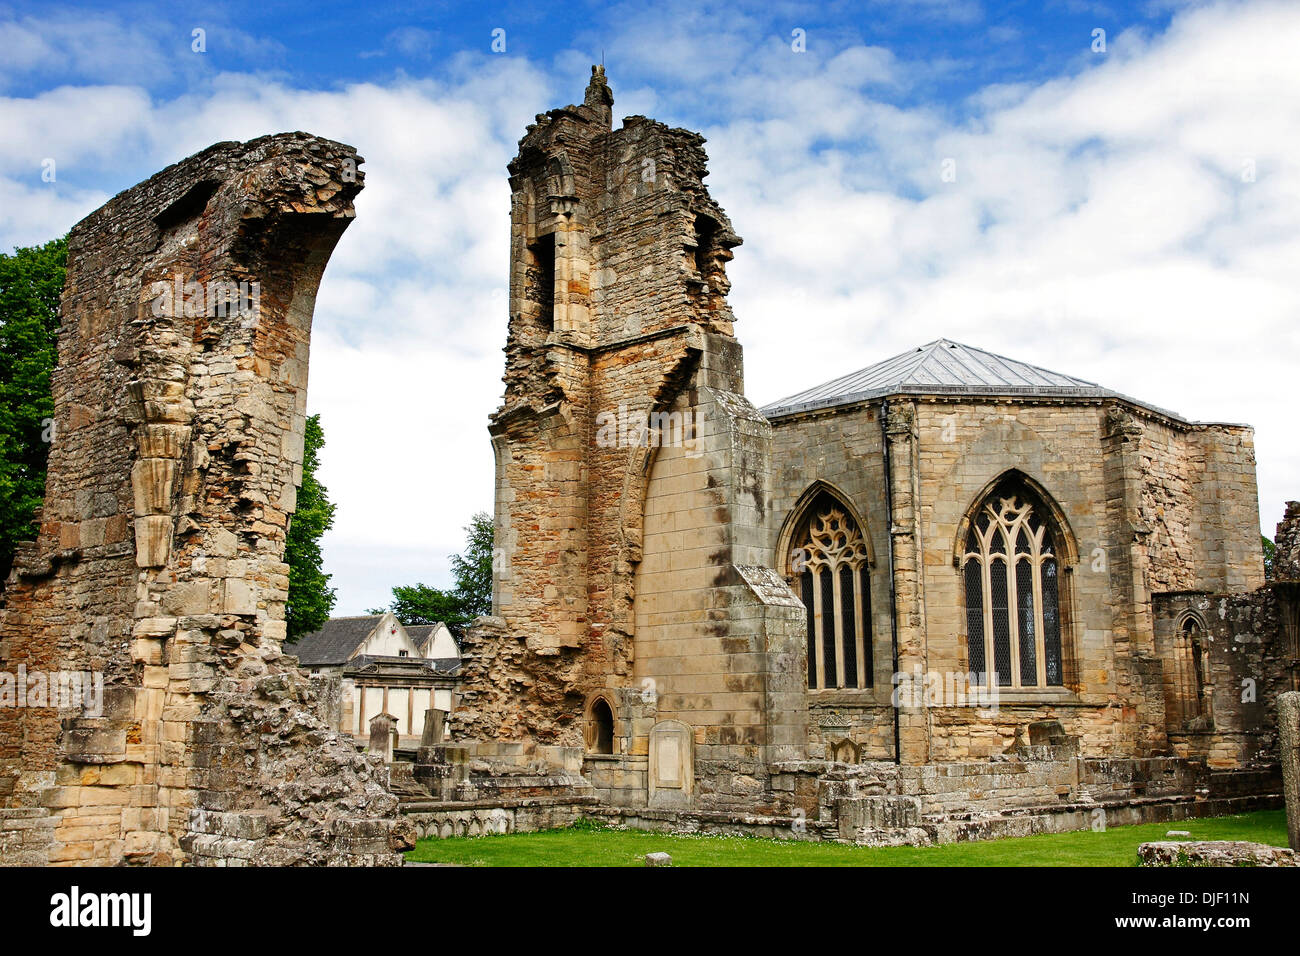 A view of the ruins of the medieval Cathedral at Elgin in the Highlands of Scotland. Stock Photo